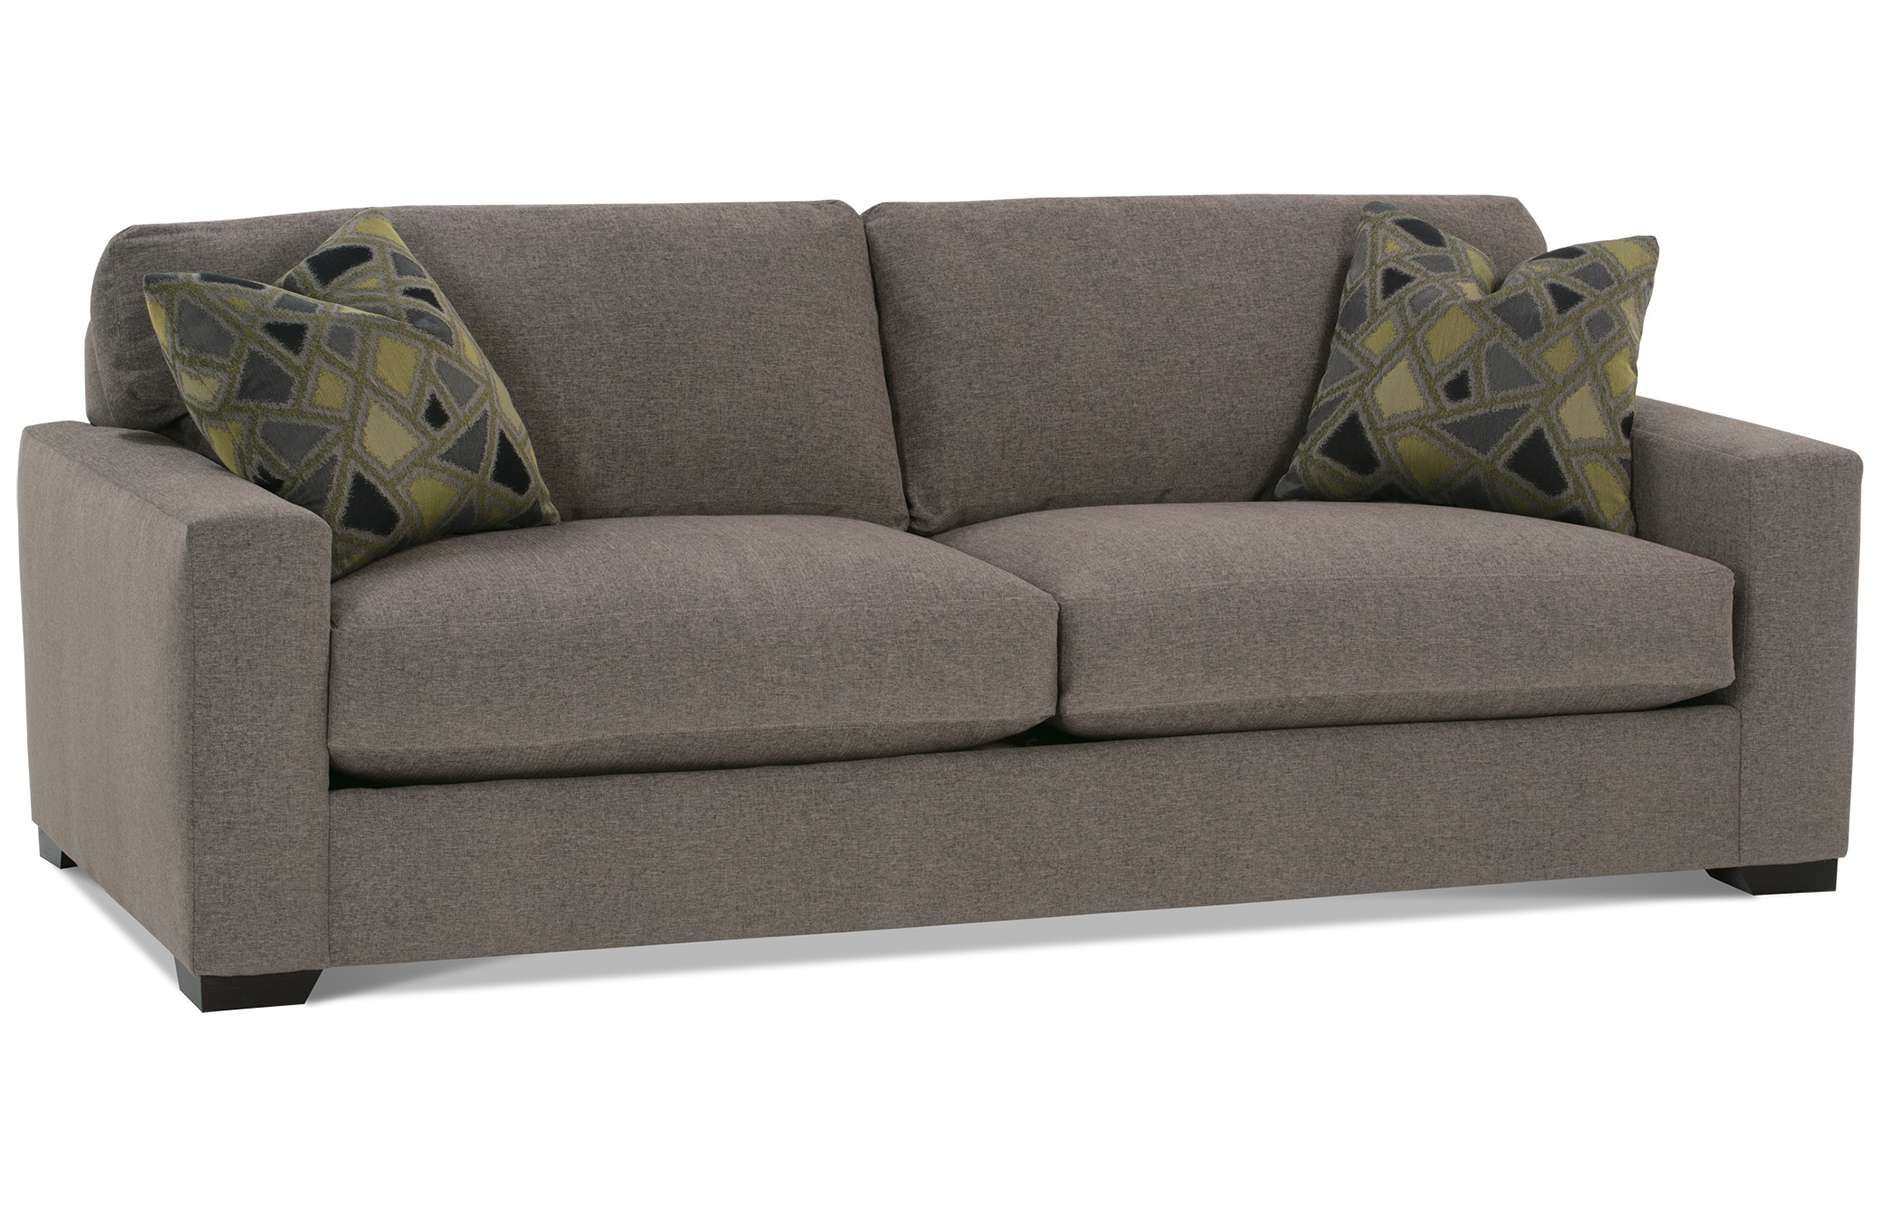 The Dakota 2 Cushion Sofa is a fortable modern design from Rowe